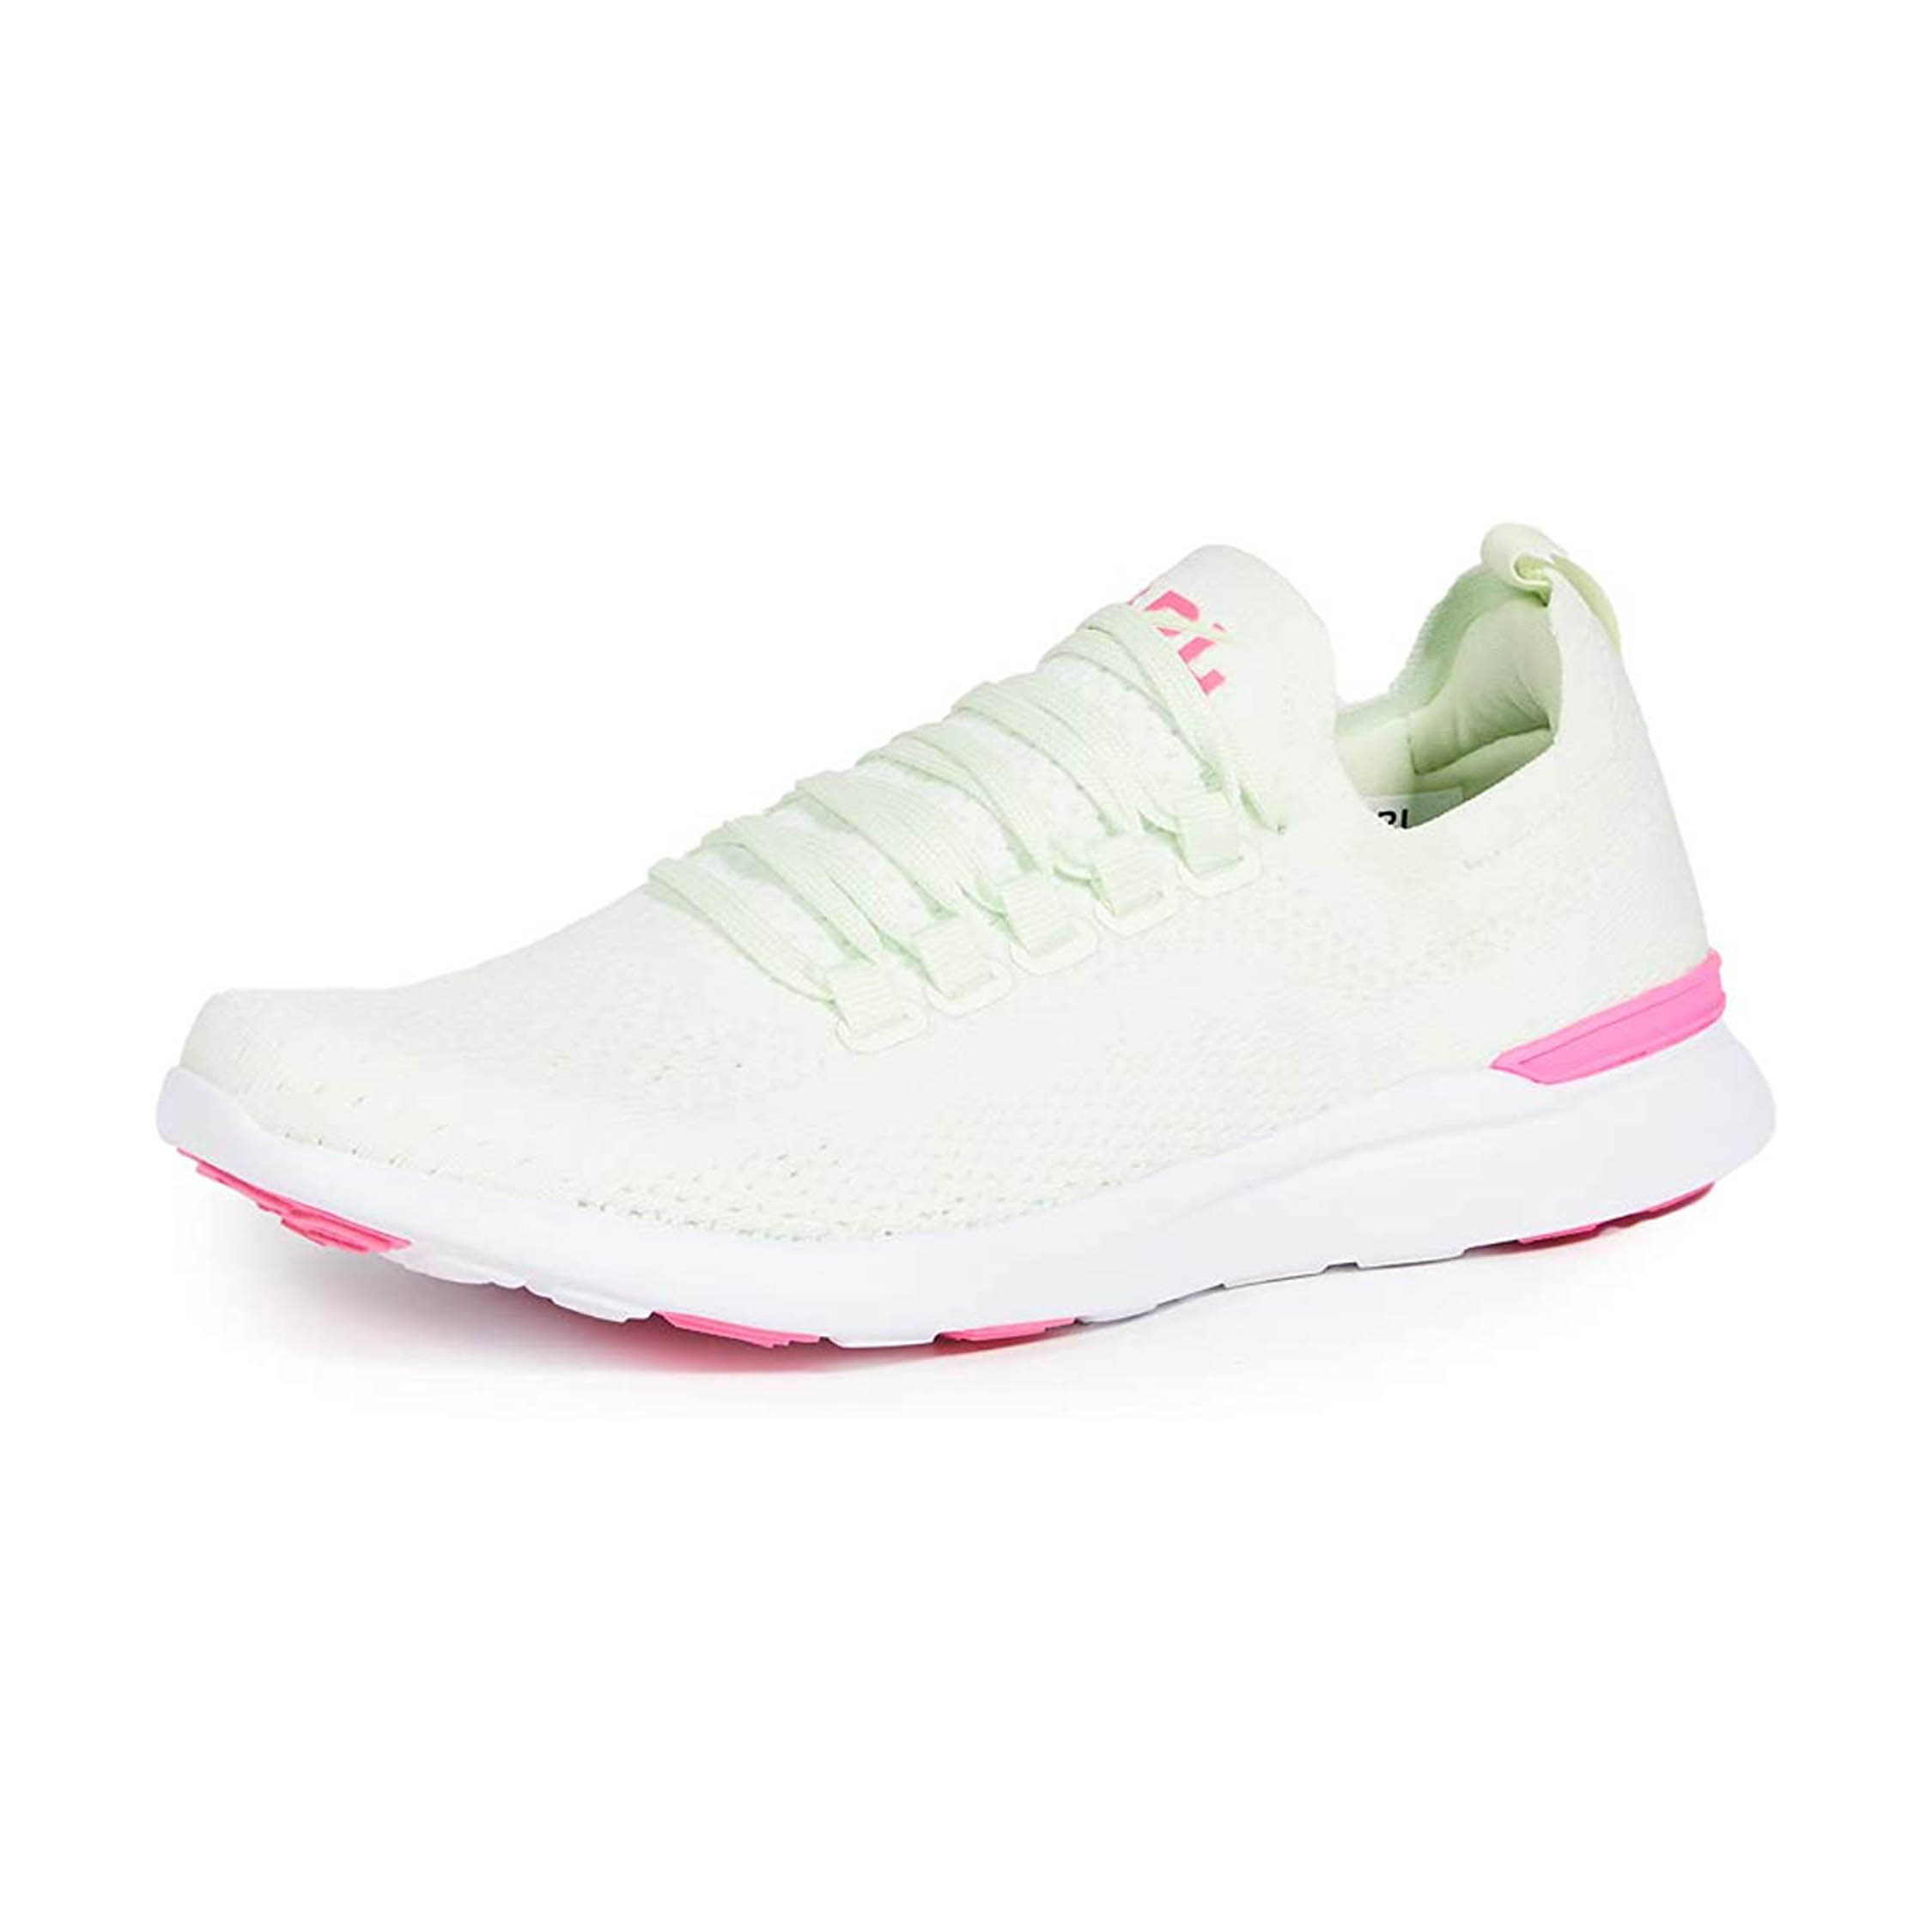 APL green and pink sneaker